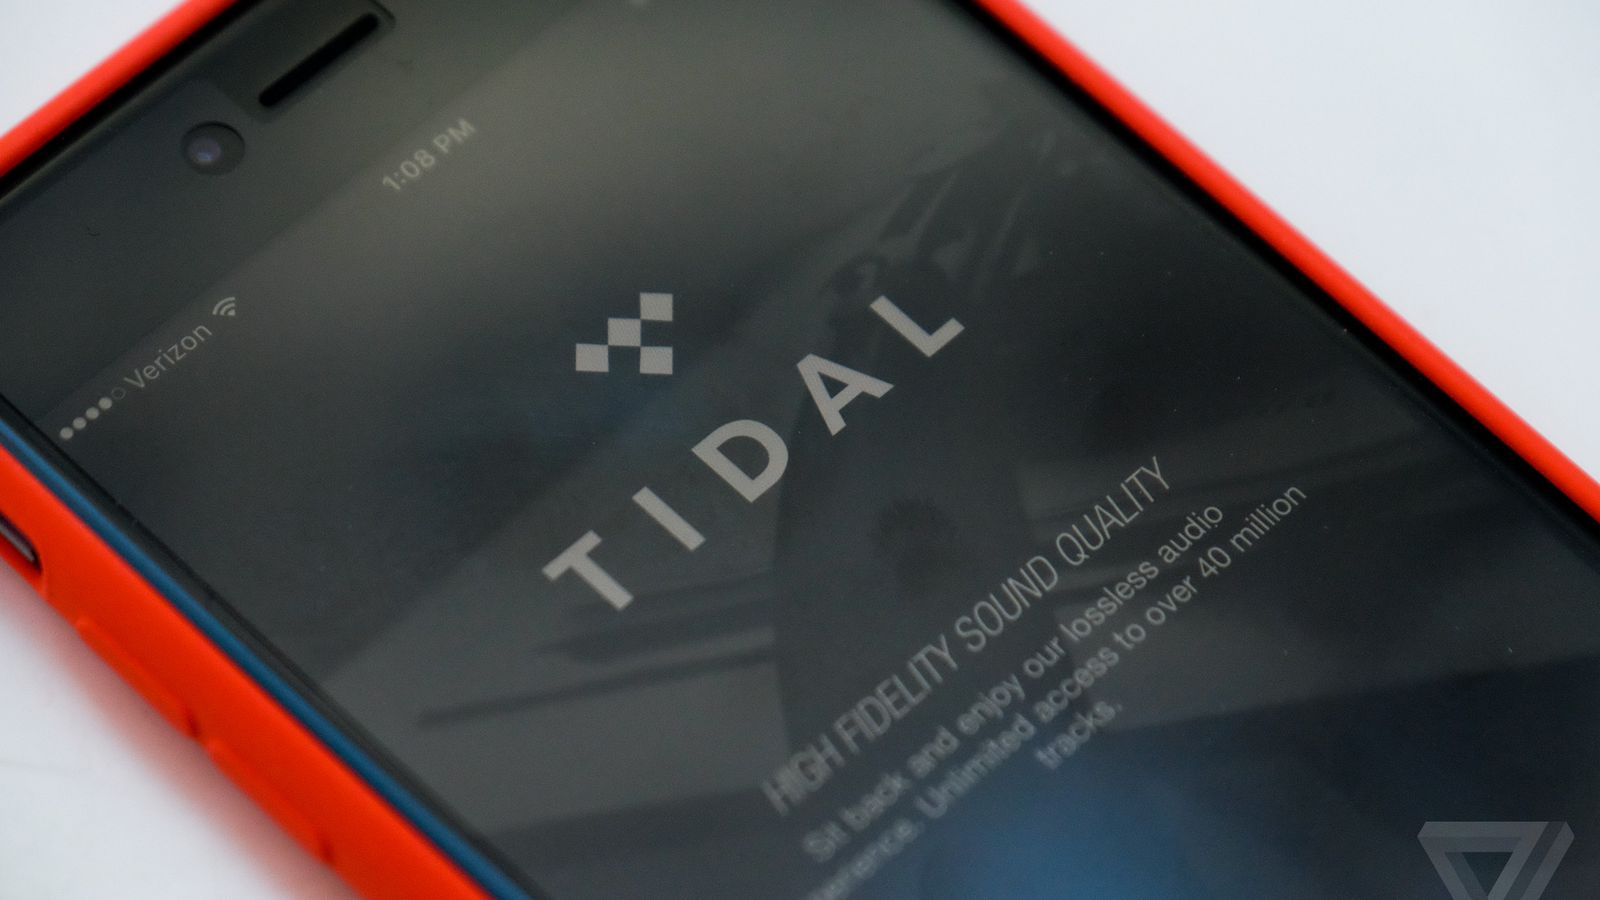 Tidal's Future is Brighter After Sprint's Investment